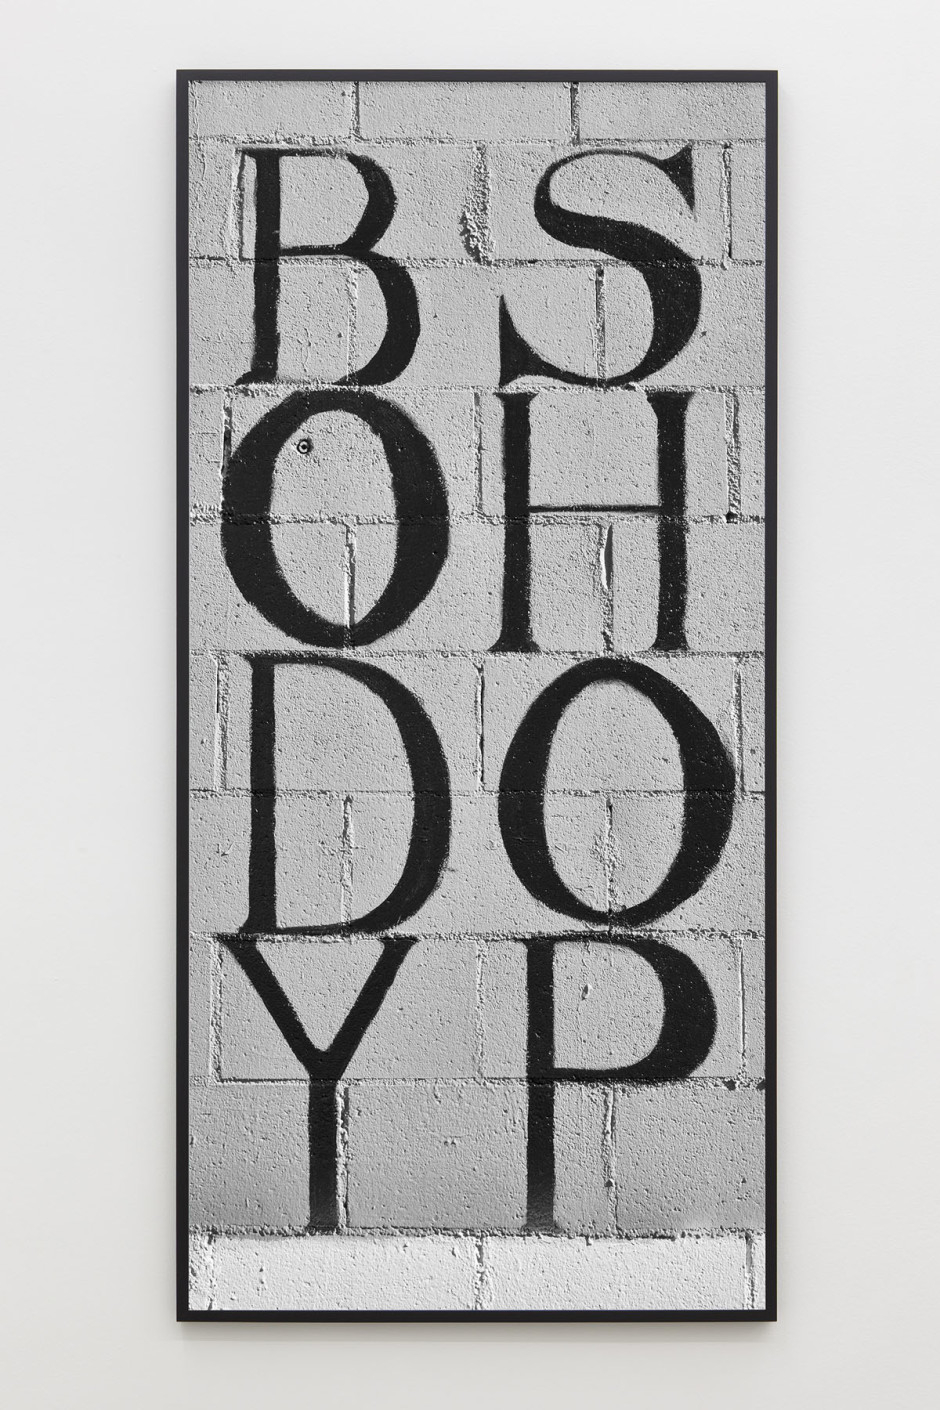 The Body Shop, 2014  archival pigment print  206.2 x 97.0 x 5.5 cm 81 1/8 x 38 3/16 x 2 1/8 in.